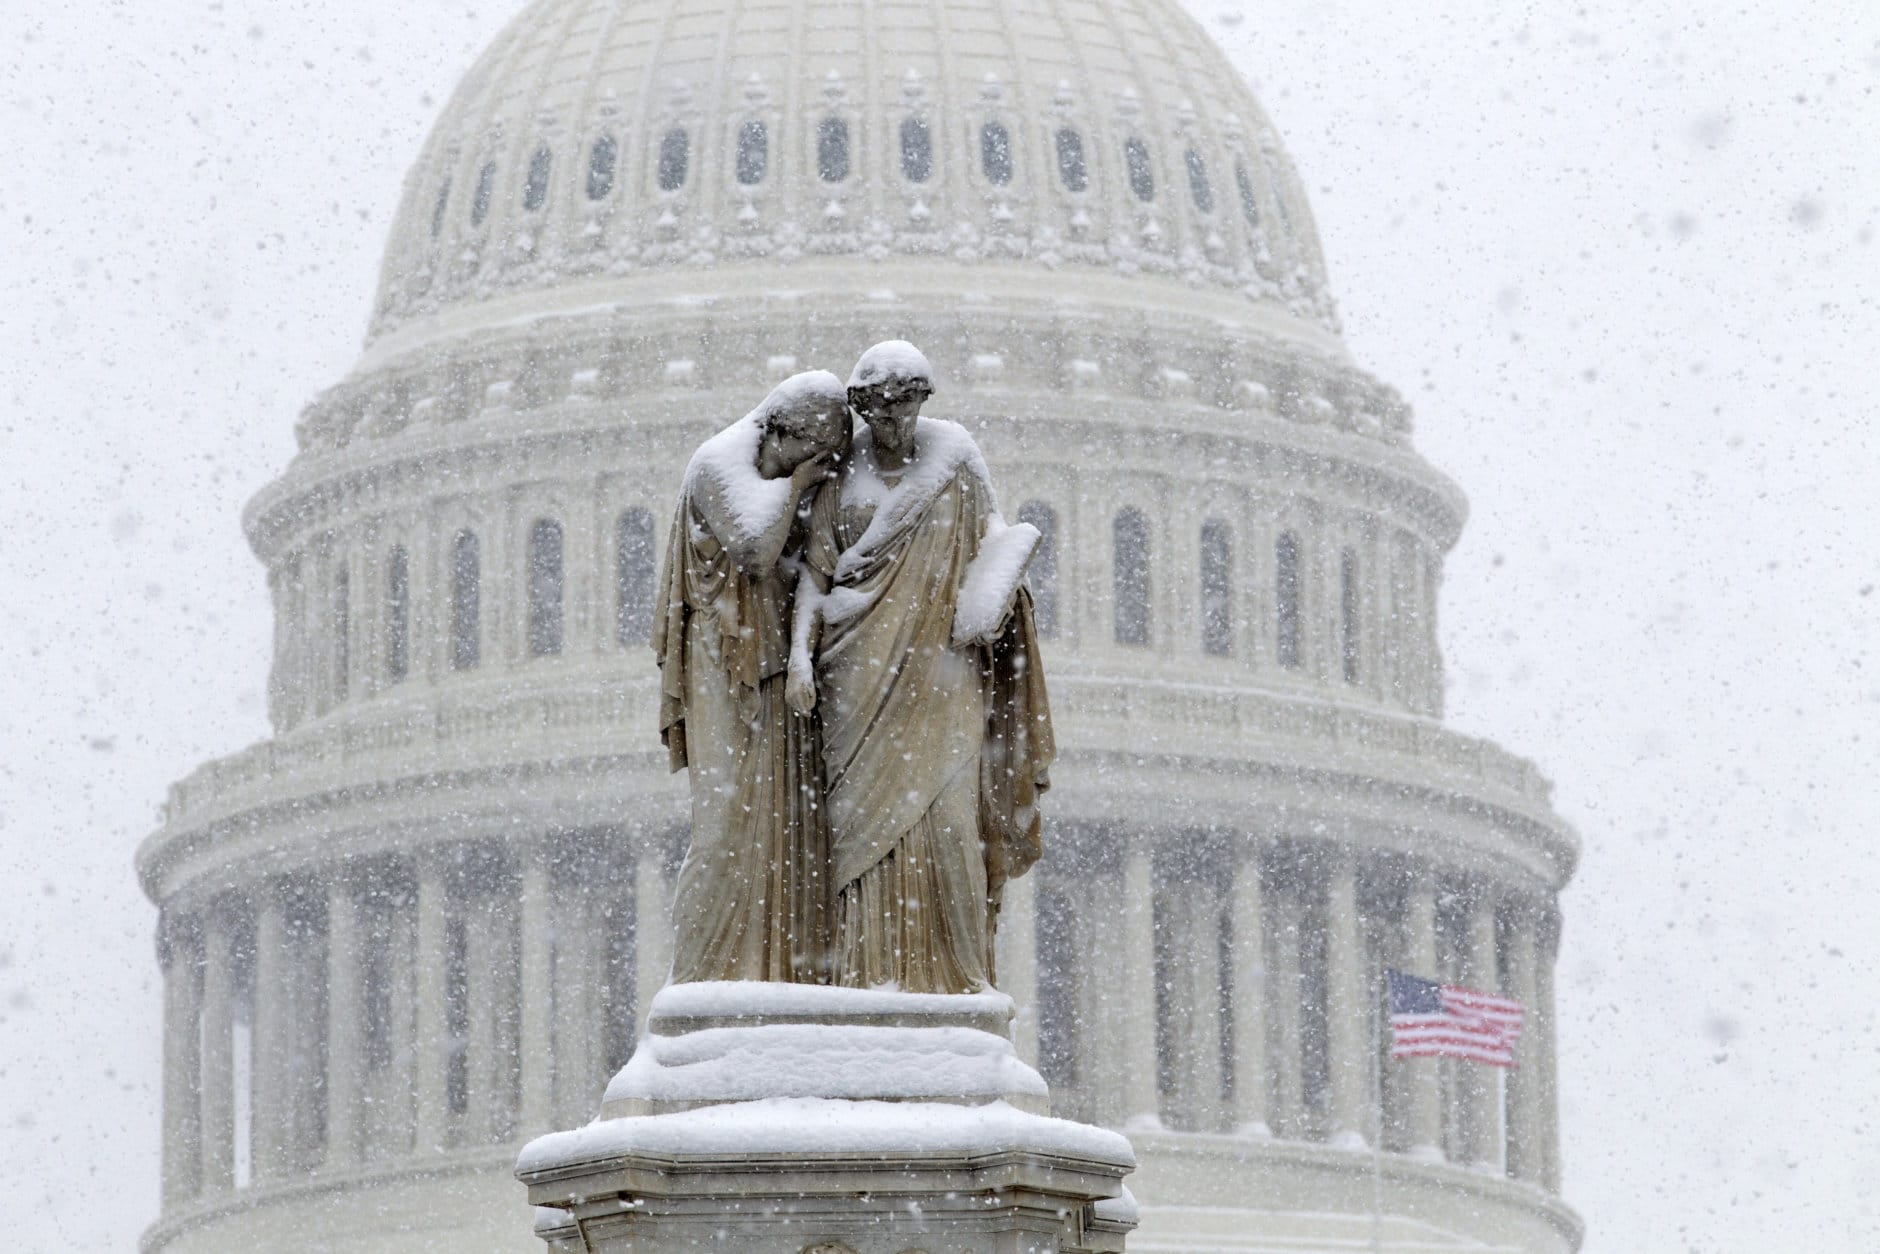 The U.S. Capitol is see behind the Peace Monument during a snowstorm, as a partial government shutdown stretches into its third week at Capitol Hill in Washington Sunday, Jan. 13, 2019. With the standoff over paying for his long-promised border wall dragging on, the president's Oval Office address and visit to the Texas border over the past week failed to break the logjam and left aides and allies fearful that the president has misjudged Democratic resolve and is running out of negotiating options. (AP Photo/Jose Luis Magana)